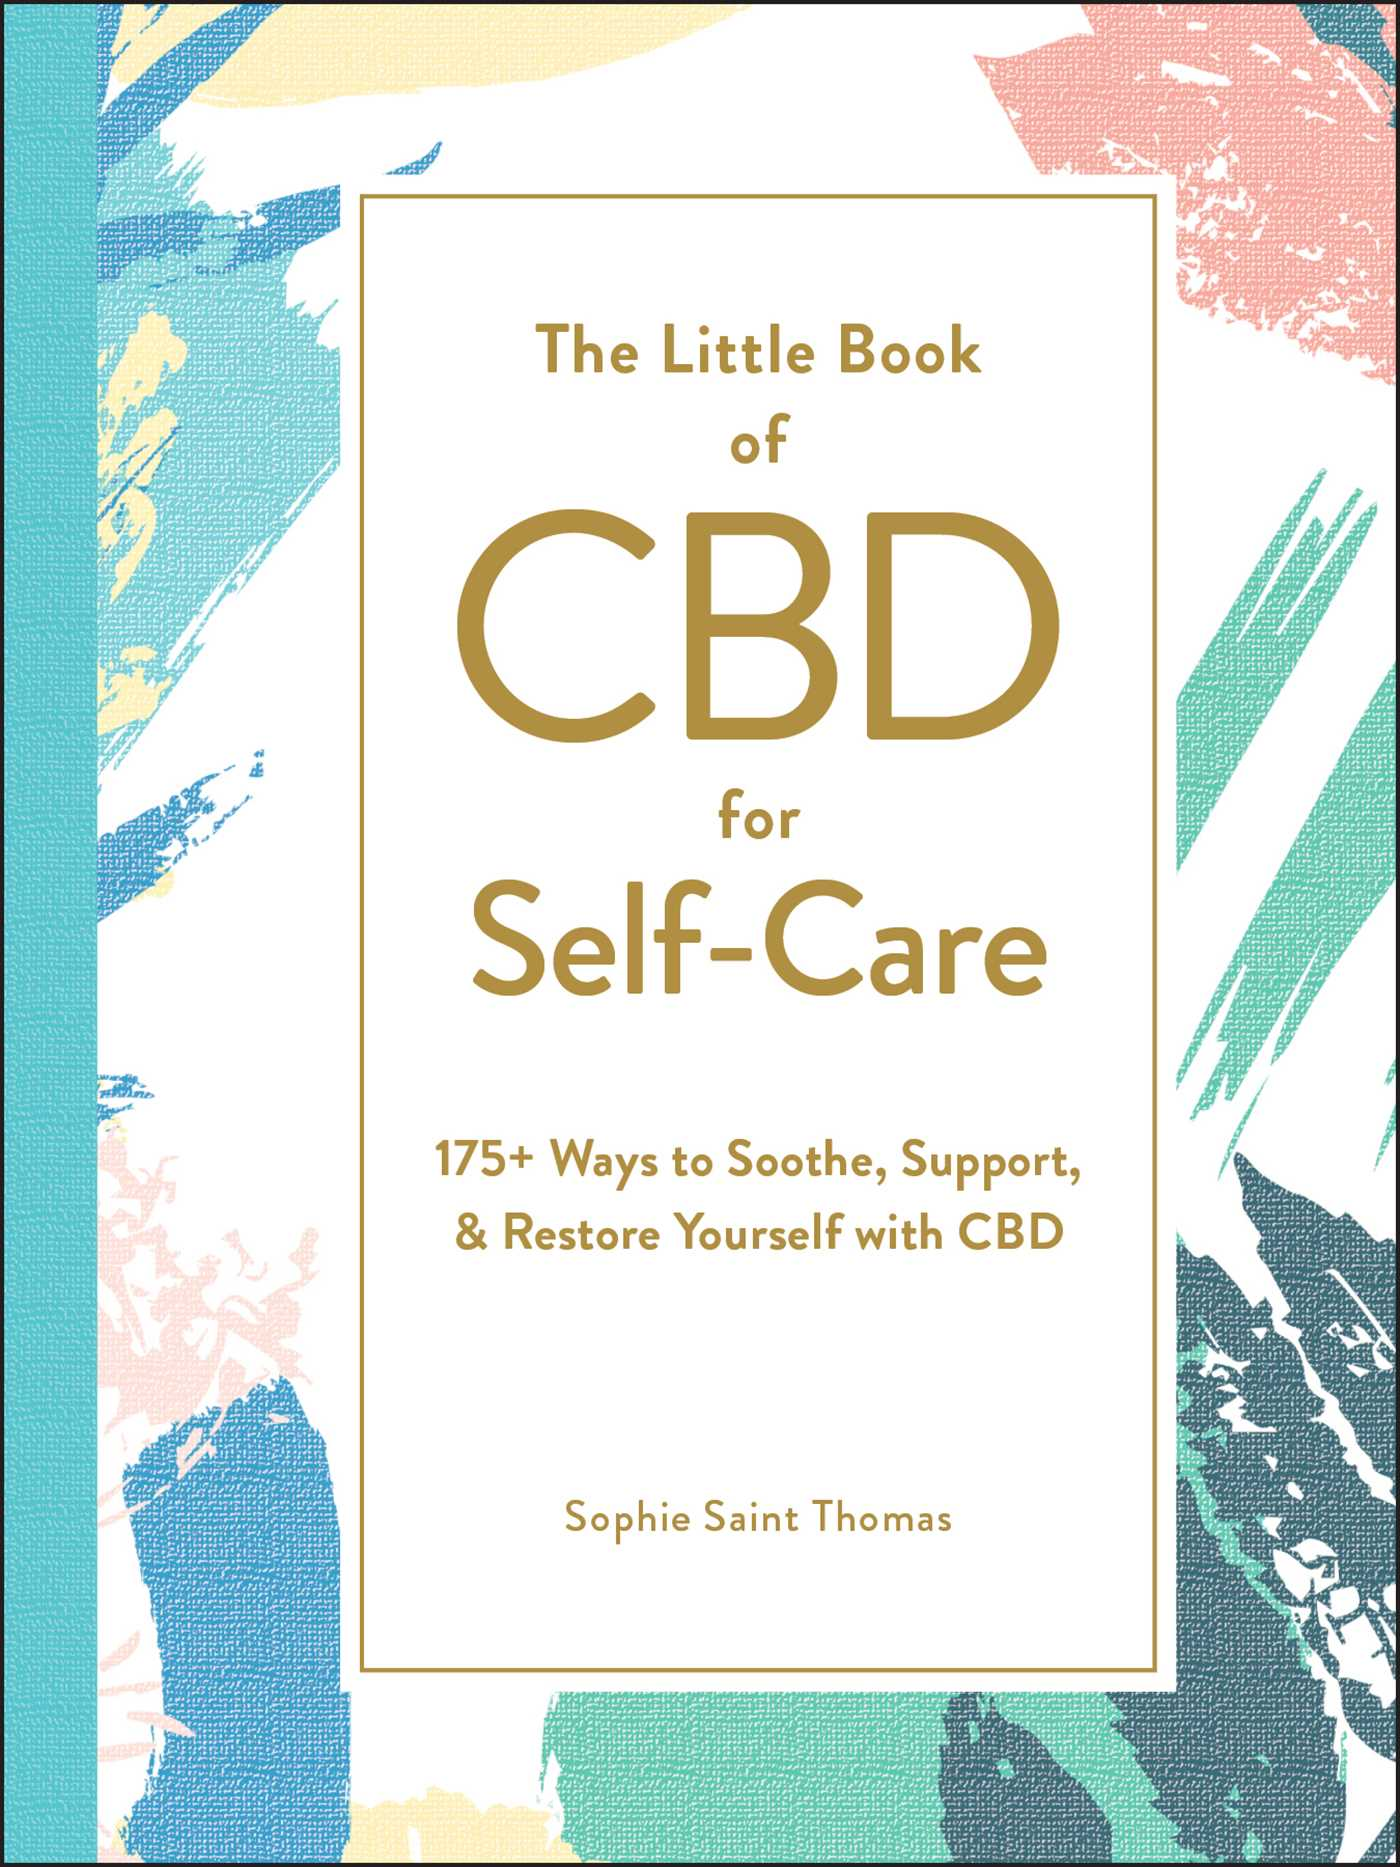 The Little Book of CBD for Self-Care - Sophie Saint Thomas